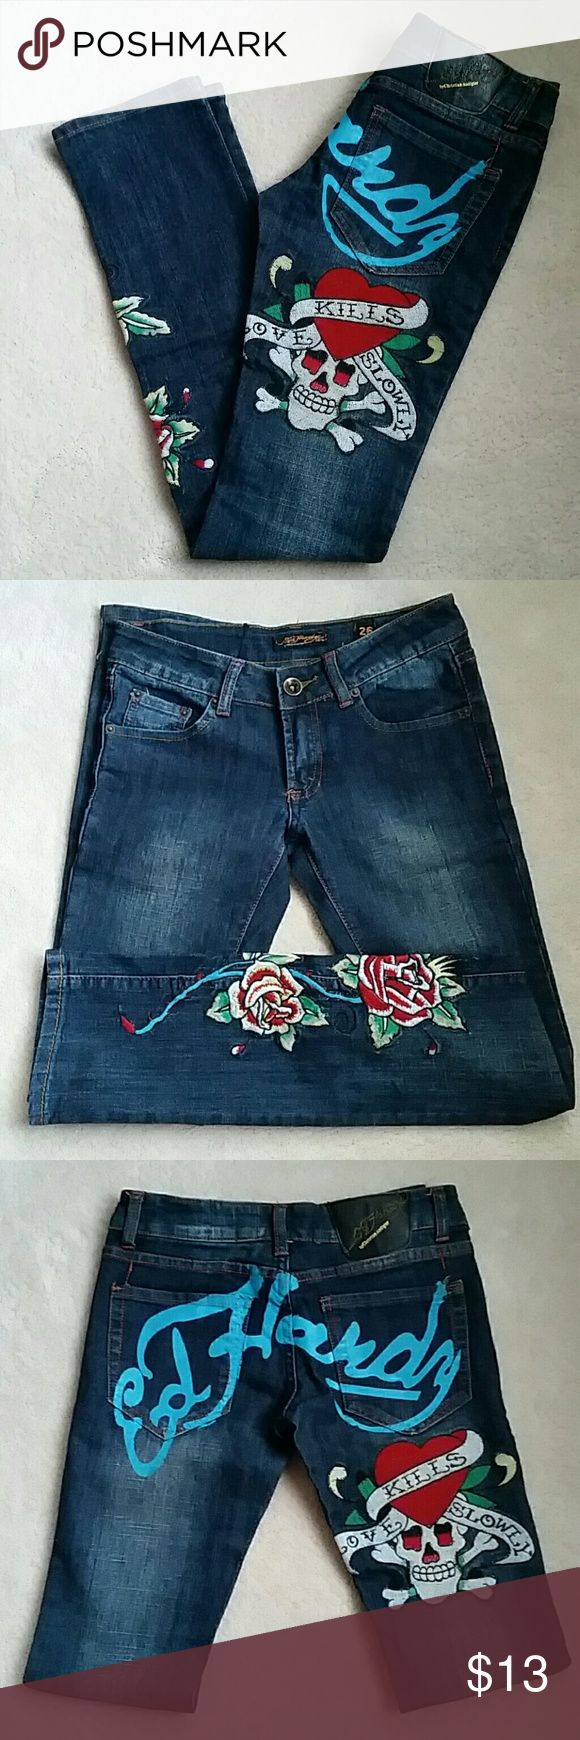 Womens Ed Hardy By Christian Audigier Jeans Selling: A pair of women's jeans with leg and back pocket embroidery  Size: 26 Great quality and Great Condition Christian Audigier Jeans Straight Leg